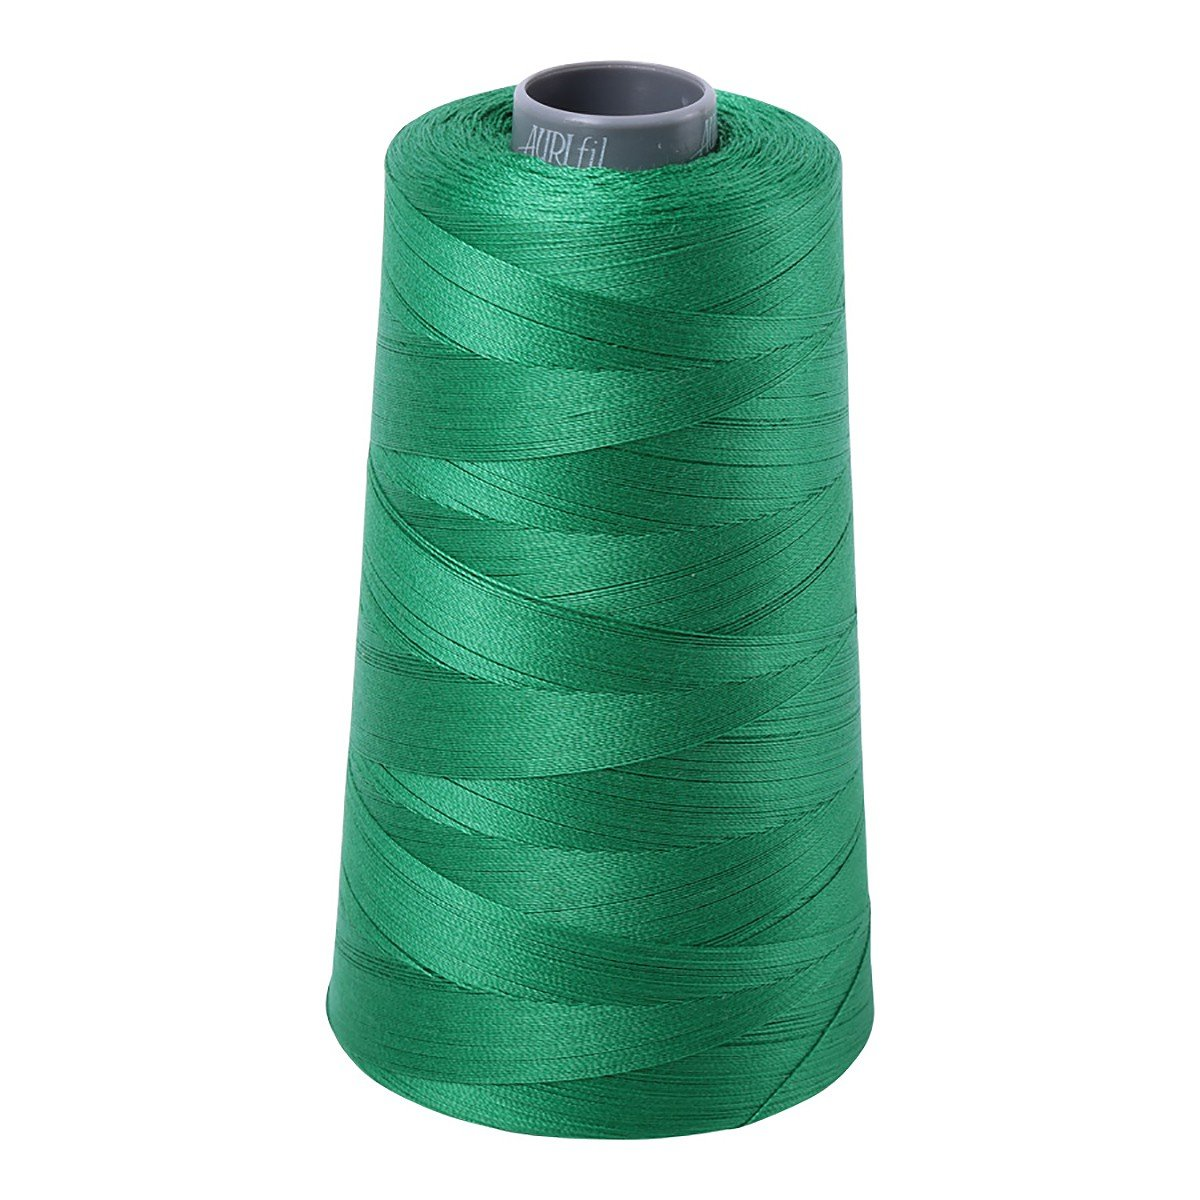 Mako (Cotton) Embroidery Thread 28wt 3609yds Green